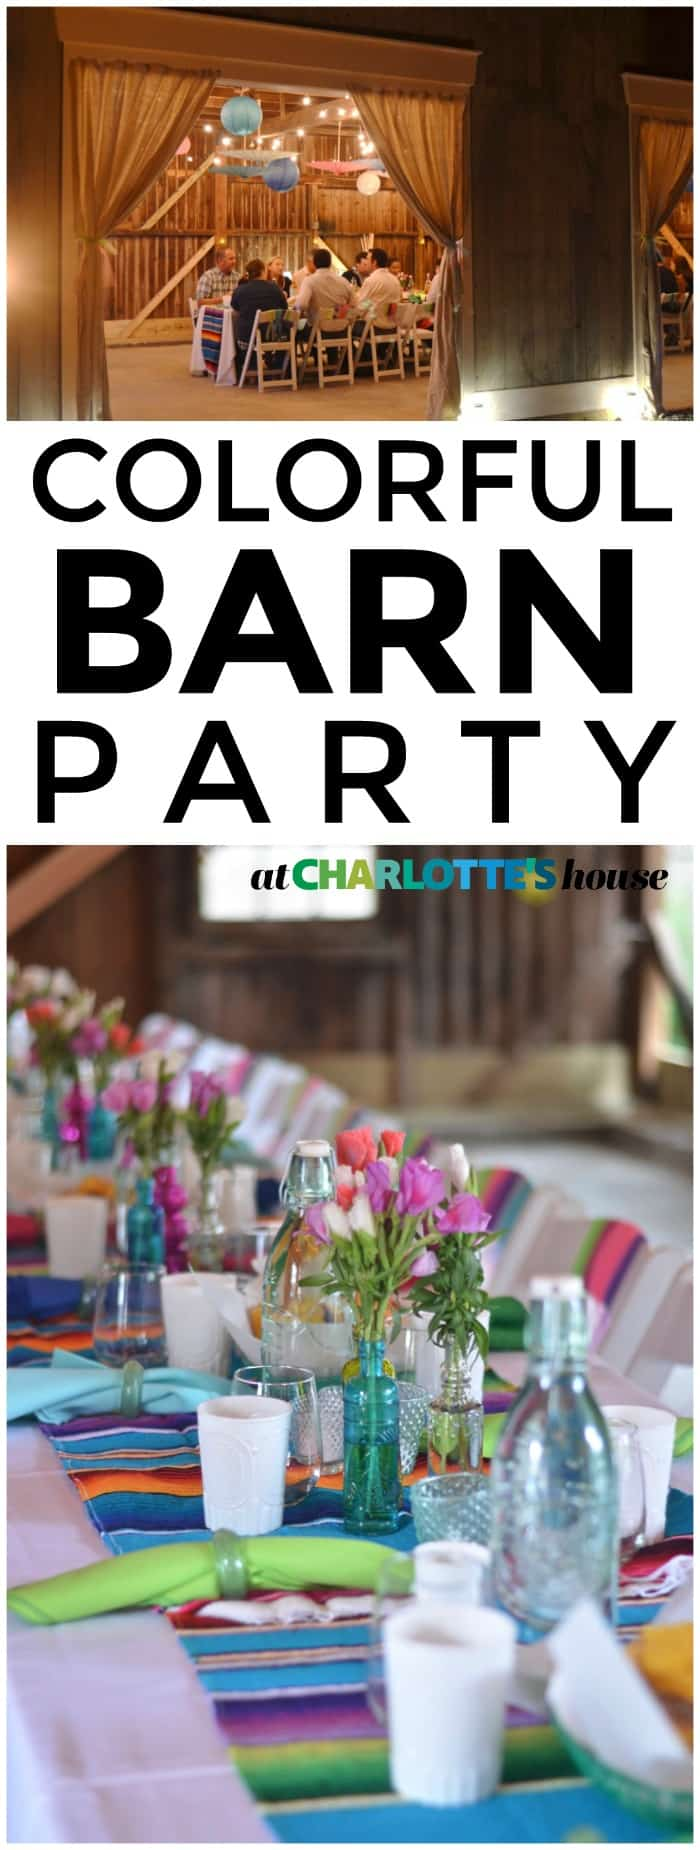 This backyard barn party was SO fun and easy to decorate!